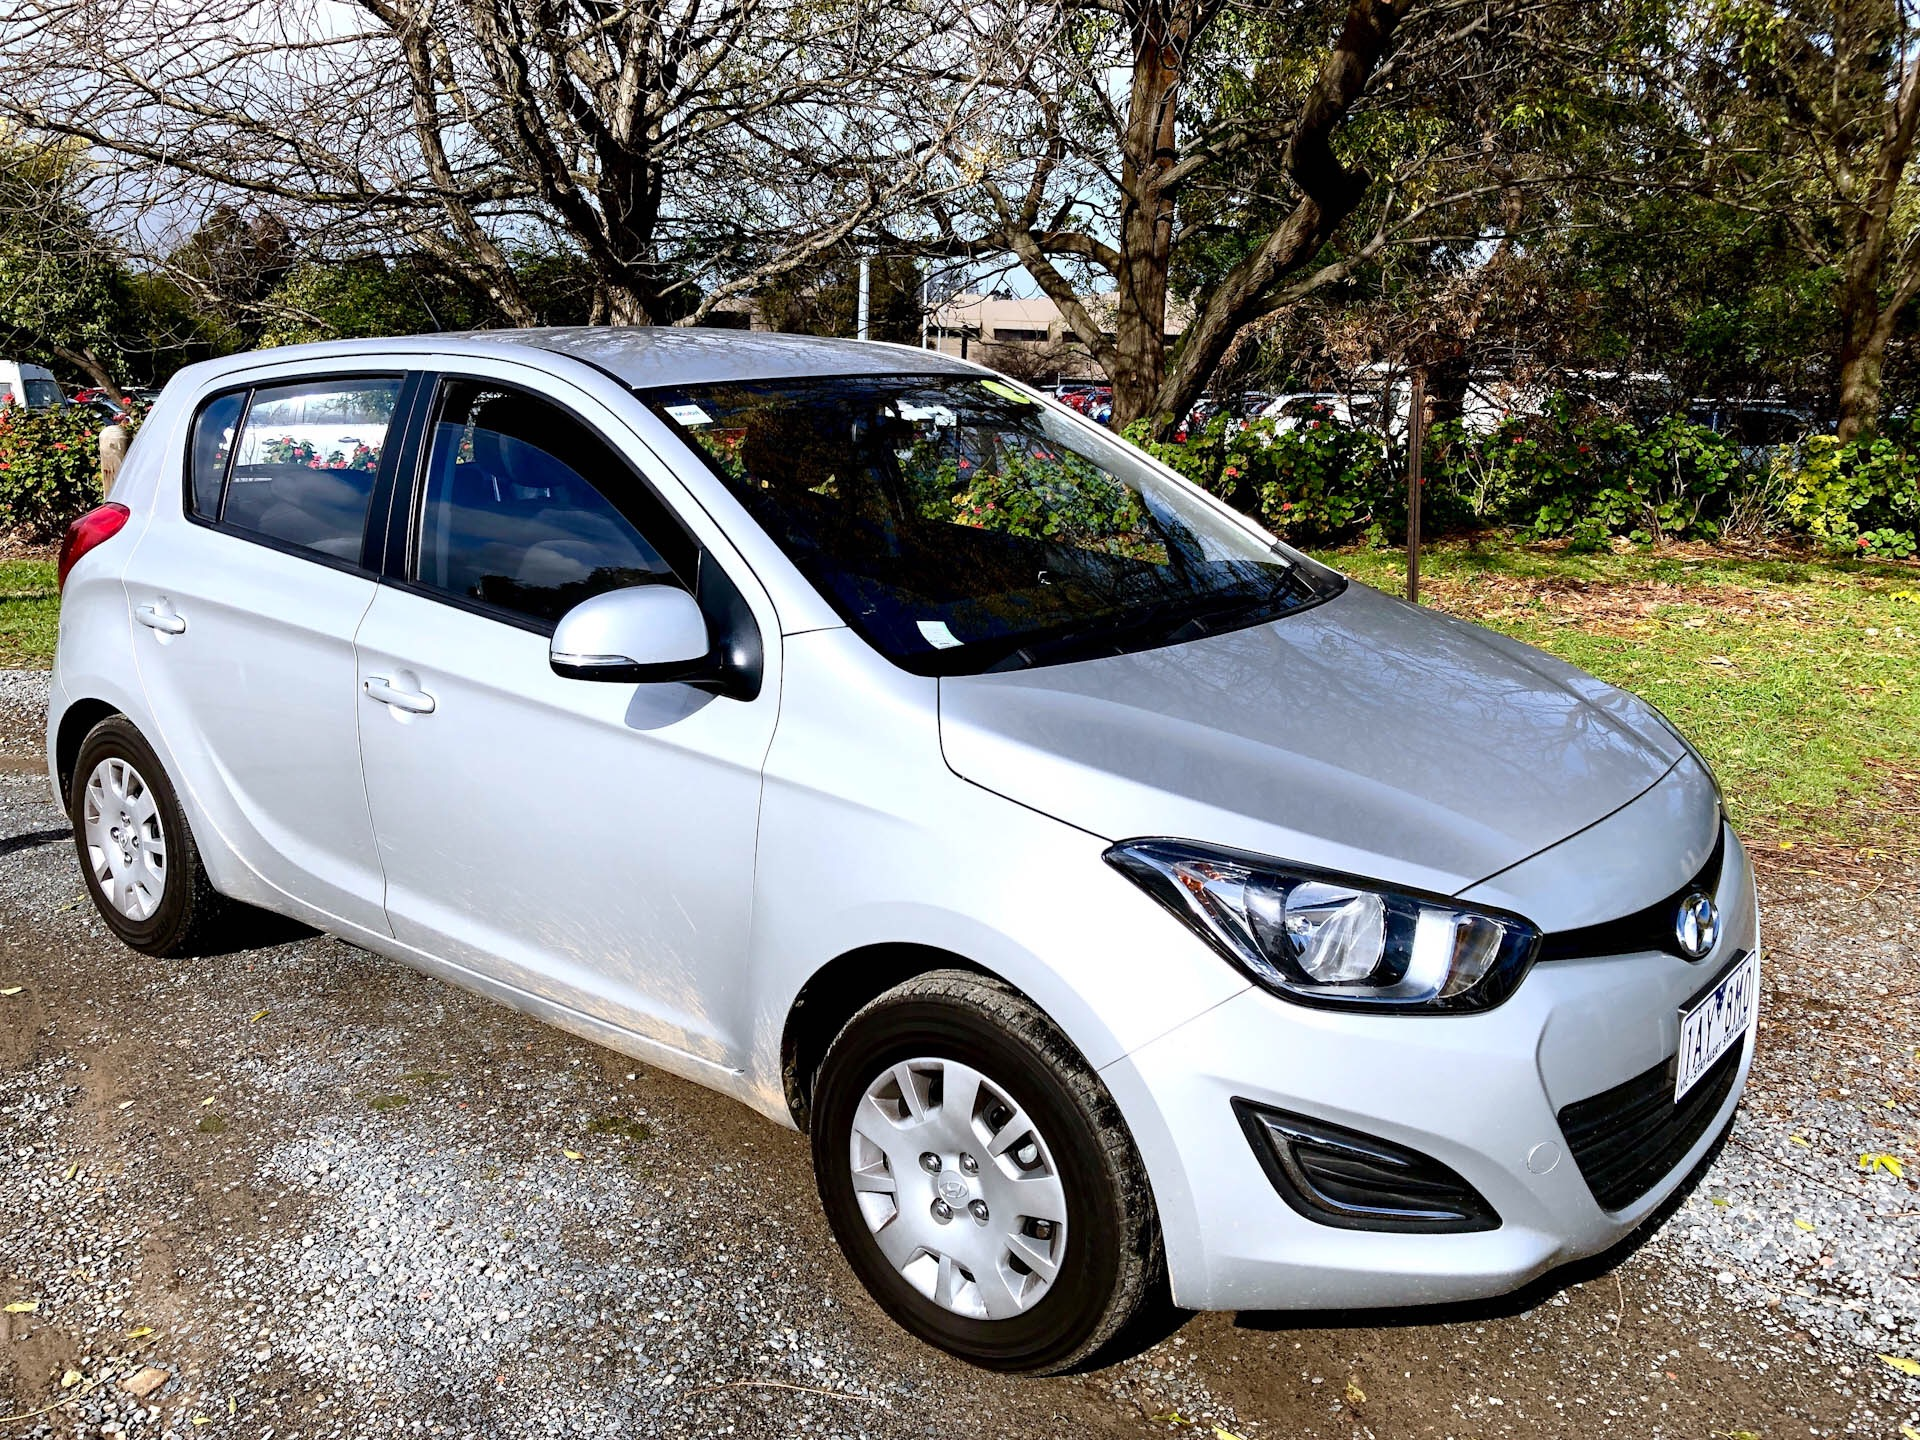 Picture of Karine's 2012 Hyundai i20